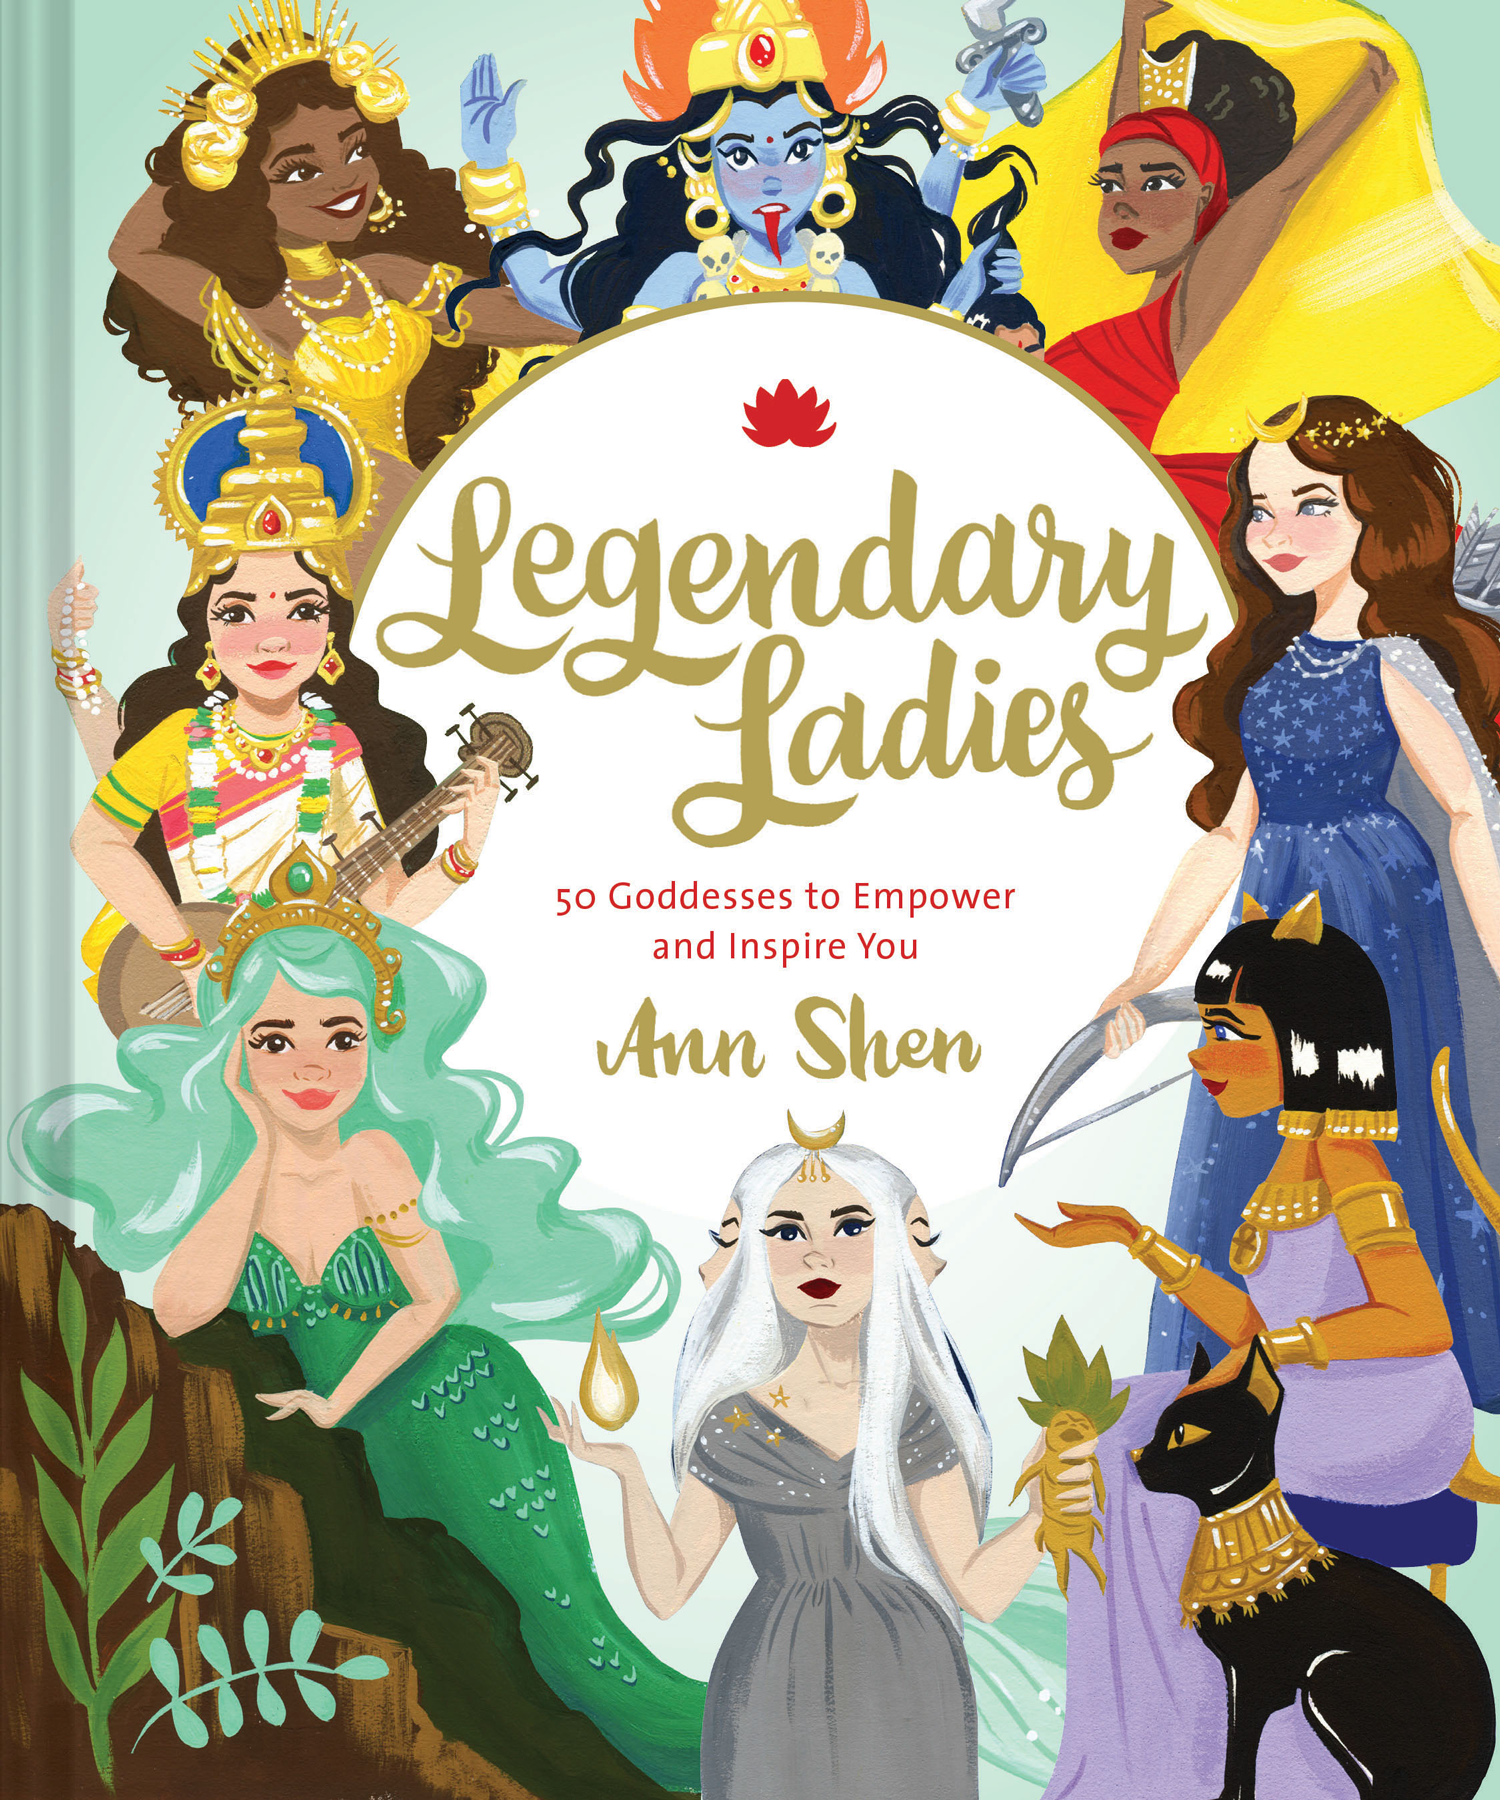 LegendaryLadiesCover.png